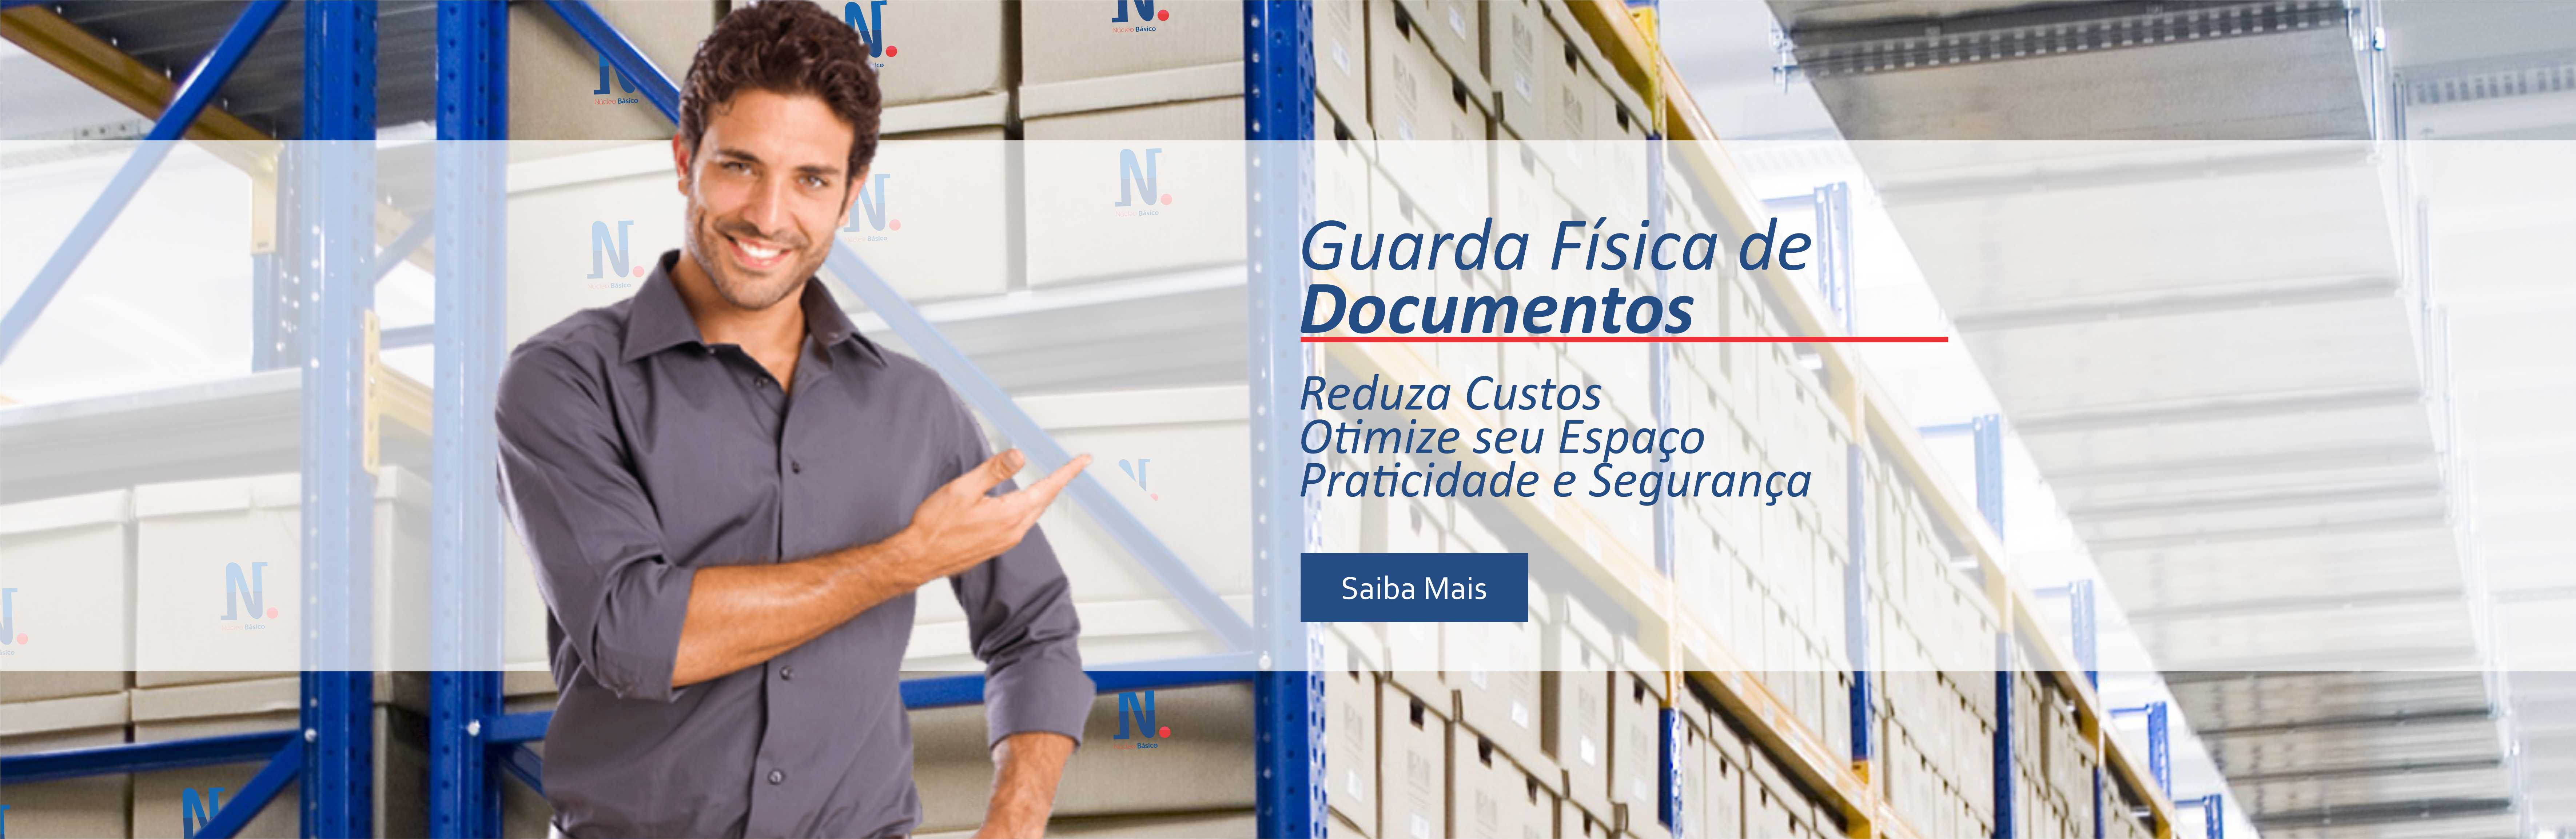 Guarda Física de Documentos